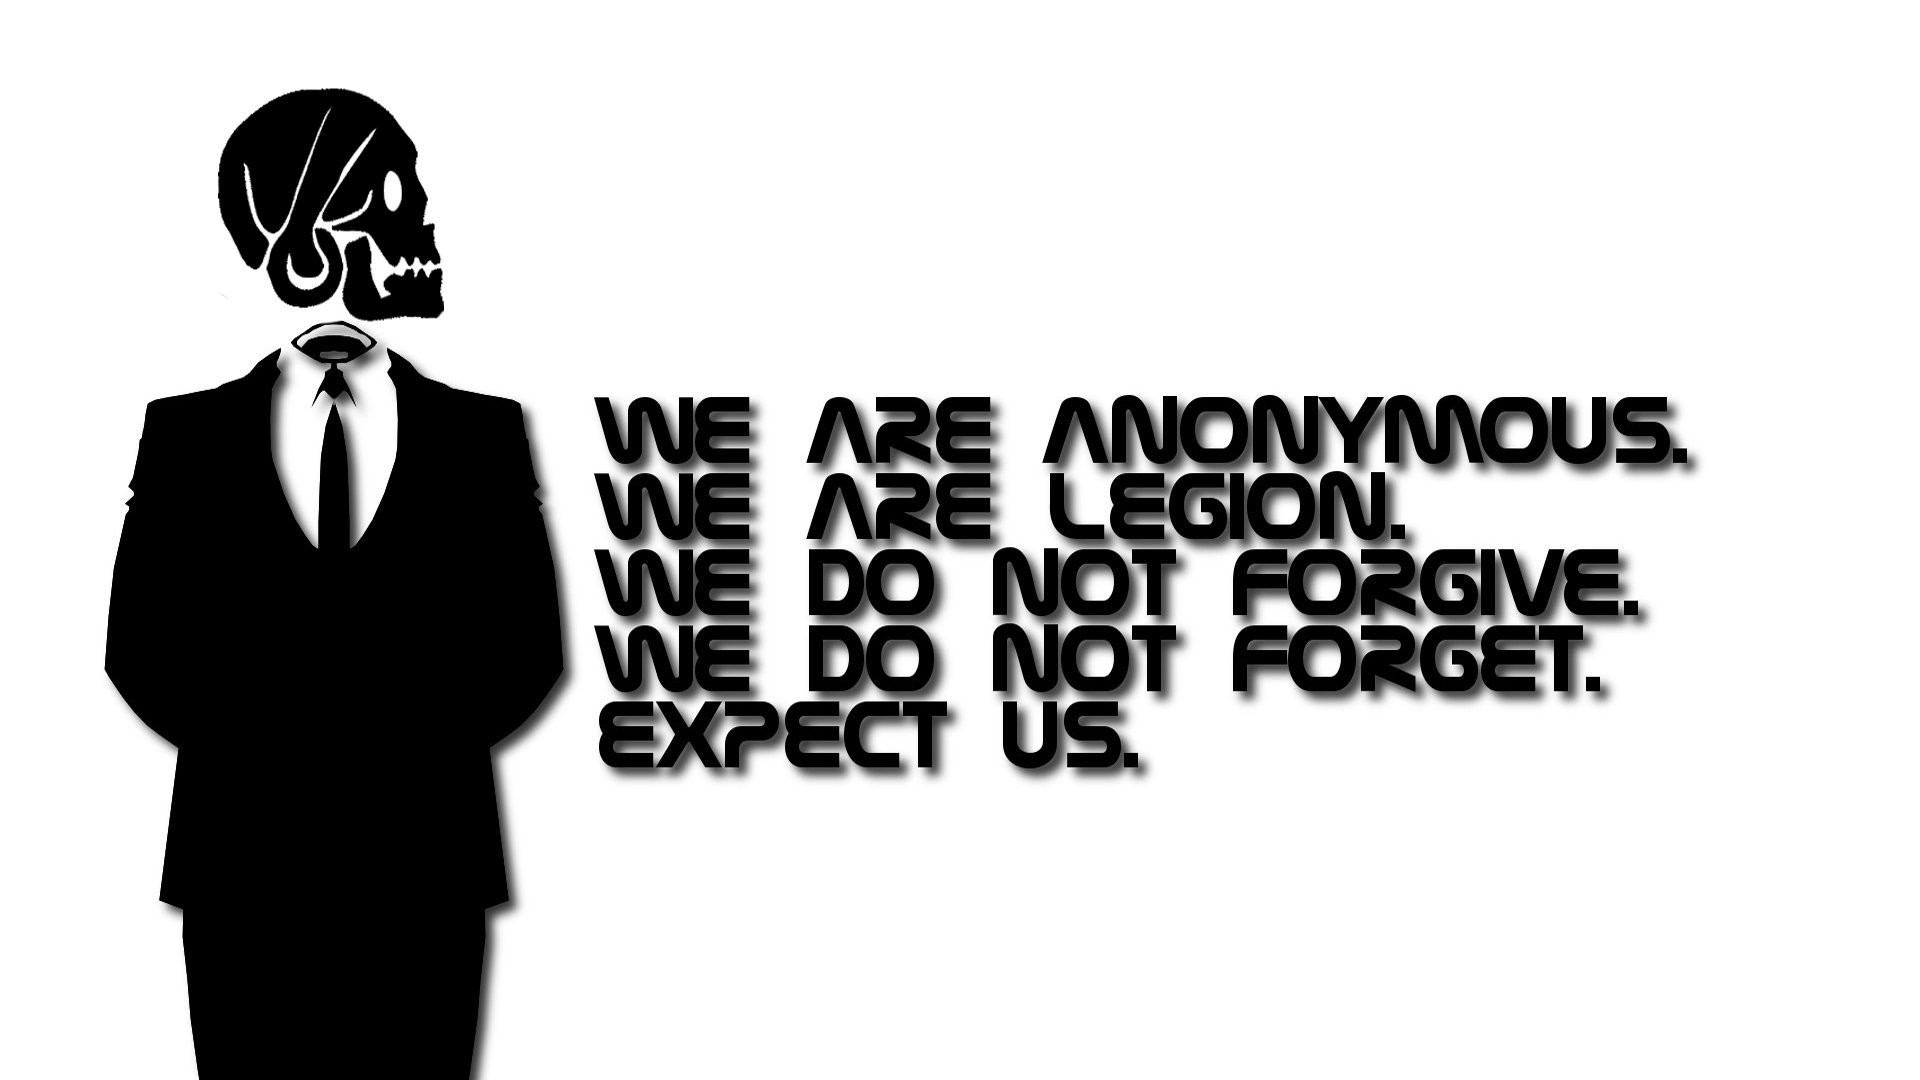 Anonymous Wallpapers Best Wallpapers | HD Wallpapers | Pinterest | Anonymous,  Hd wallpaper and Wallpaper